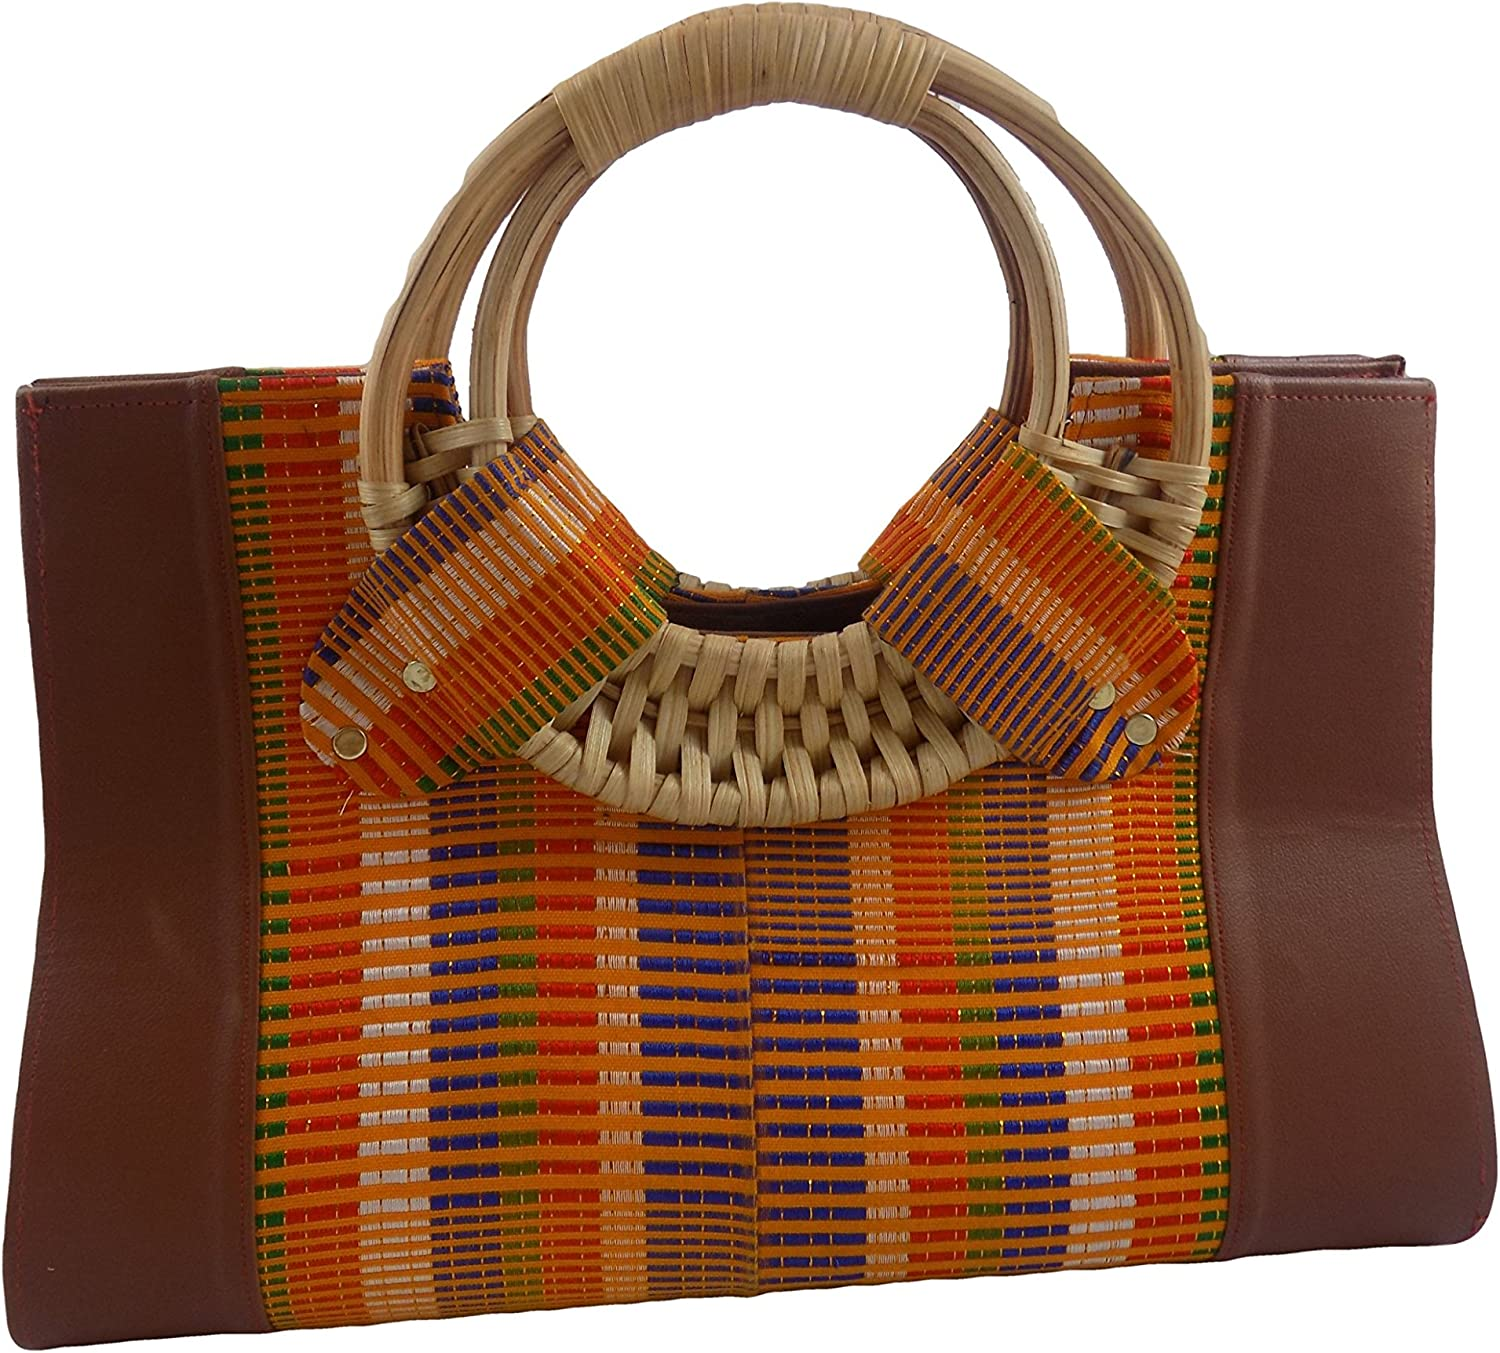 Fab Ladies' Genuine Leather Handbag with Original Kente Material